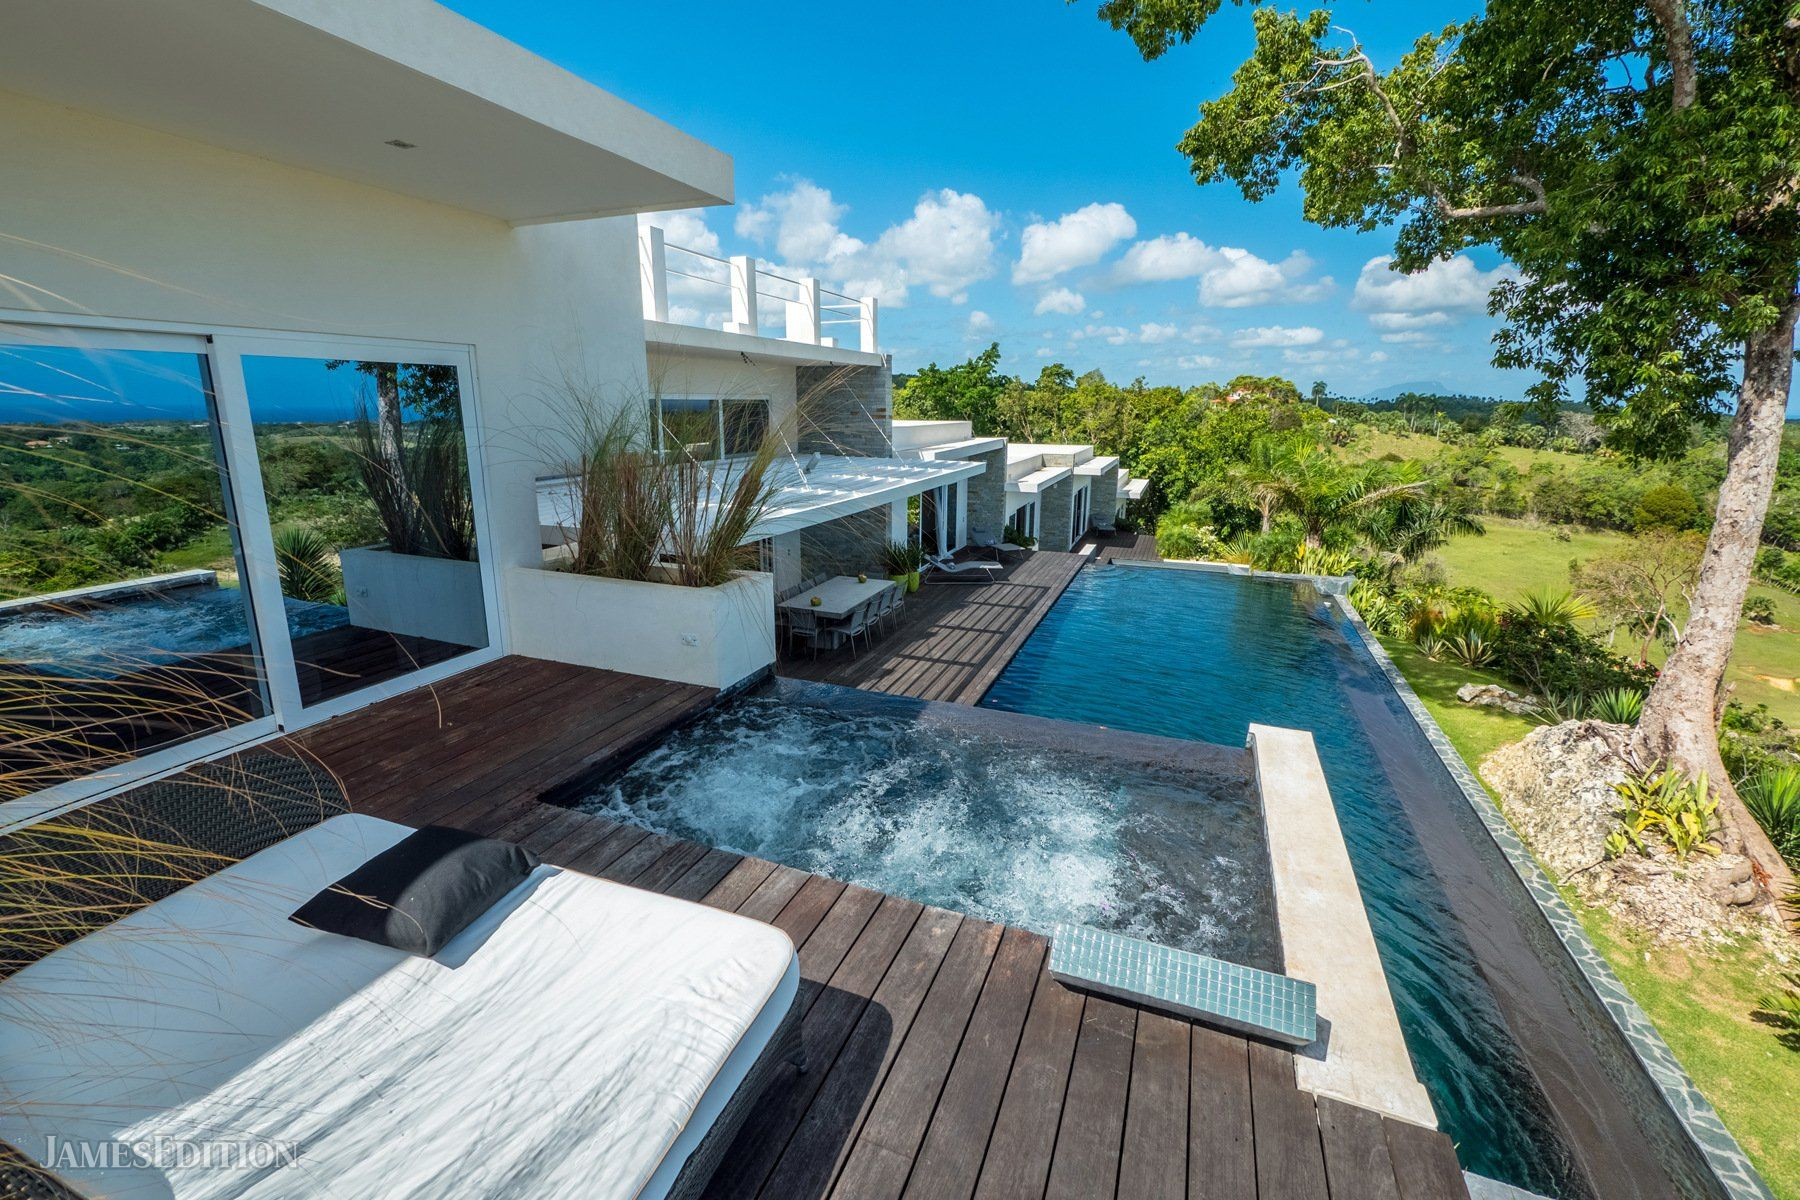 Chalet in Puerto Plata Province, Dominican Republic 1